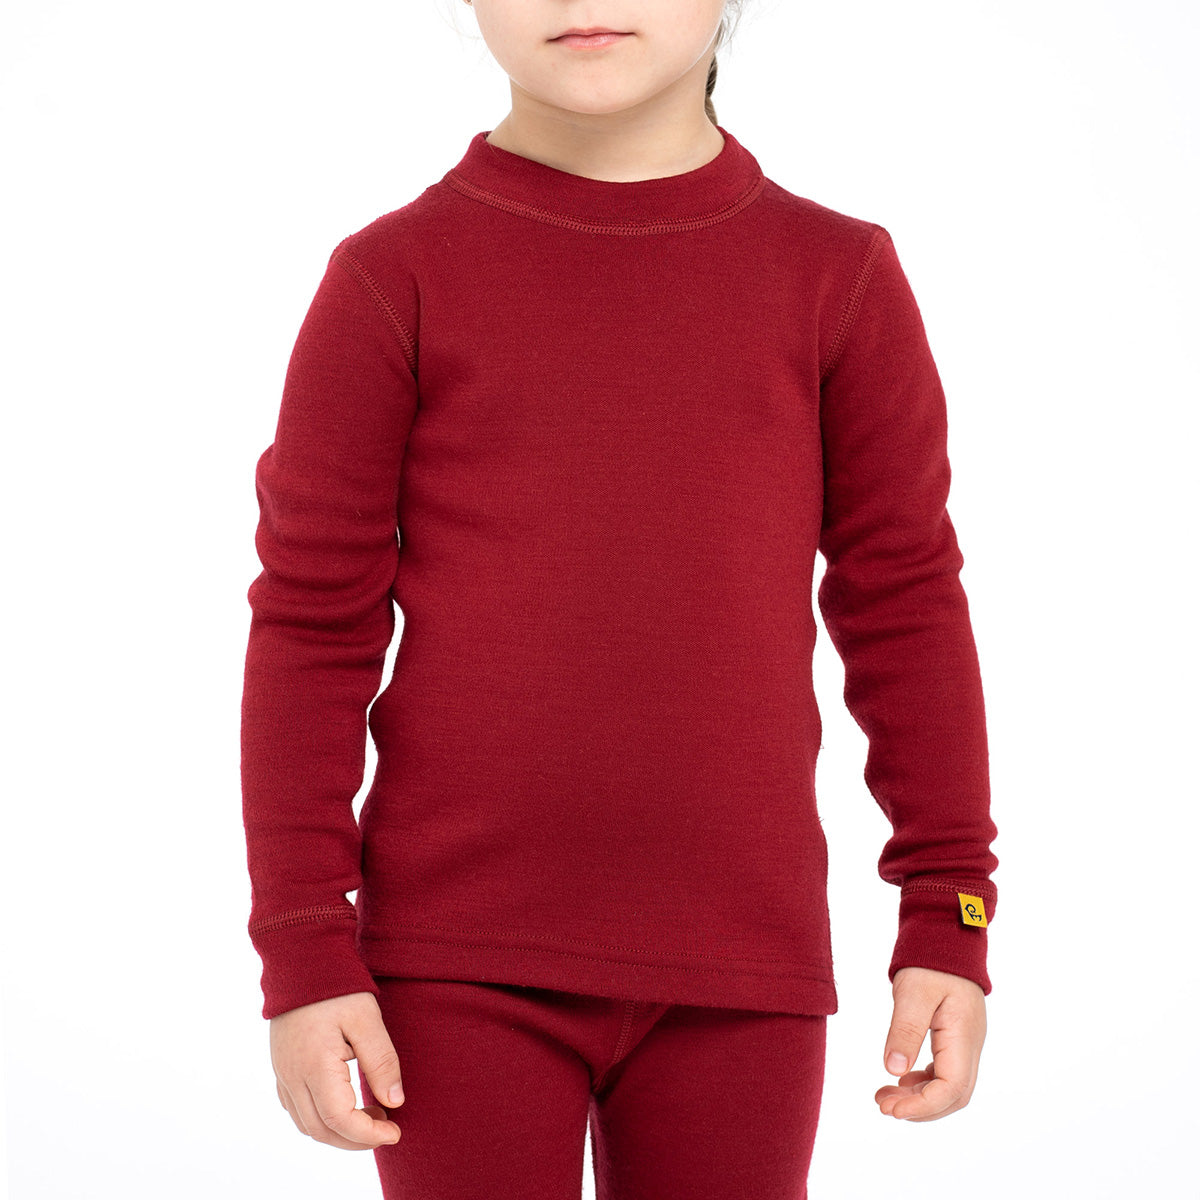 menique Kids' Merino 250 Long Sleeve Crew Royal Cherry Color